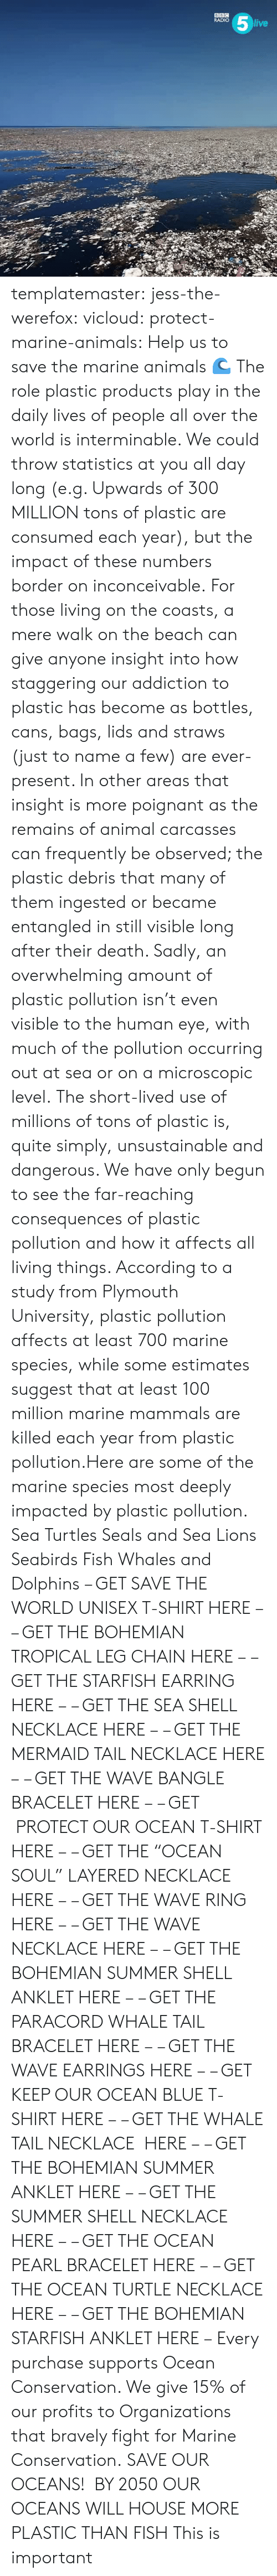 "Animals, Gif, and Radio: RADIO  ive templatemaster:  jess-the-werefox: vicloud:   protect-marine-animals:  Help us to save the marine animals 🌊 The role plastic products play in the daily lives of people all over the world is interminable. We could throw statistics at you all day long (e.g. Upwards of 300 MILLION tons of plastic are consumed each year), but the impact of these numbers border on inconceivable. For those living on the coasts, a mere walk on the beach can give anyone insight into how staggering our addiction to plastic has become as bottles, cans, bags, lids and straws (just to name a few) are ever-present. In other areas that insight is more poignant as the remains of animal carcasses can frequently be observed; the plastic debris that many of them ingested or became entangled in still visible long after their death. Sadly, an overwhelming amount of plastic pollution isn't even visible to the human eye, with much of the pollution occurring out at sea or on a microscopic level. The short-lived use of millions of tons of plastic is, quite simply, unsustainable and dangerous. We have only begun to see the far-reaching consequences of plastic pollution and how it affects all living things. According to a study from Plymouth University, plastic pollution affects at least 700 marine species, while some estimates suggest that at least 100 million marine mammals are killed each year from plastic pollution.Here are some of the marine species most deeply impacted by plastic pollution. Sea Turtles Seals and Sea Lions Seabirds Fish Whales and Dolphins – GET SAVE THE WORLD UNISEX T-SHIRT HERE – – GET THE BOHEMIAN TROPICAL LEG CHAIN HERE – – GET THE STARFISH EARRING HERE – – GET THE SEA SHELL NECKLACE HERE – – GET THE MERMAID TAIL NECKLACE HERE – – GET THE WAVE BANGLE BRACELET HERE – – GET  PROTECT OUR OCEAN T-SHIRT HERE – – GET THE ""OCEAN SOUL"" LAYERED NECKLACE HERE – – GET THE WAVE RING HERE – – GET THE WAVE NECKLACE HERE – – GET THE BOHEMIAN SUMMER SHELL ANKLET HERE – – GET THE PARACORD WHALE TAIL BRACELET HERE – – GET THE WAVE EARRINGS HERE – – GET KEEP OUR OCEAN BLUE T-SHIRT HERE – – GET THE WHALE TAIL NECKLACE  HERE – – GET THE BOHEMIAN SUMMER ANKLET HERE – – GET THE SUMMER SHELL NECKLACE HERE – – GET THE OCEAN PEARL BRACELET HERE – – GET THE OCEAN TURTLE NECKLACE HERE – – GET THE BOHEMIAN STARFISH ANKLET HERE – Every purchase supports Ocean Conservation. We give 15% of our profits to Organizations that bravely fight for Marine Conservation.  SAVE OUR OCEANS!    BY 2050 OUR OCEANS WILL HOUSE MORE PLASTIC THAN FISH   This is important"